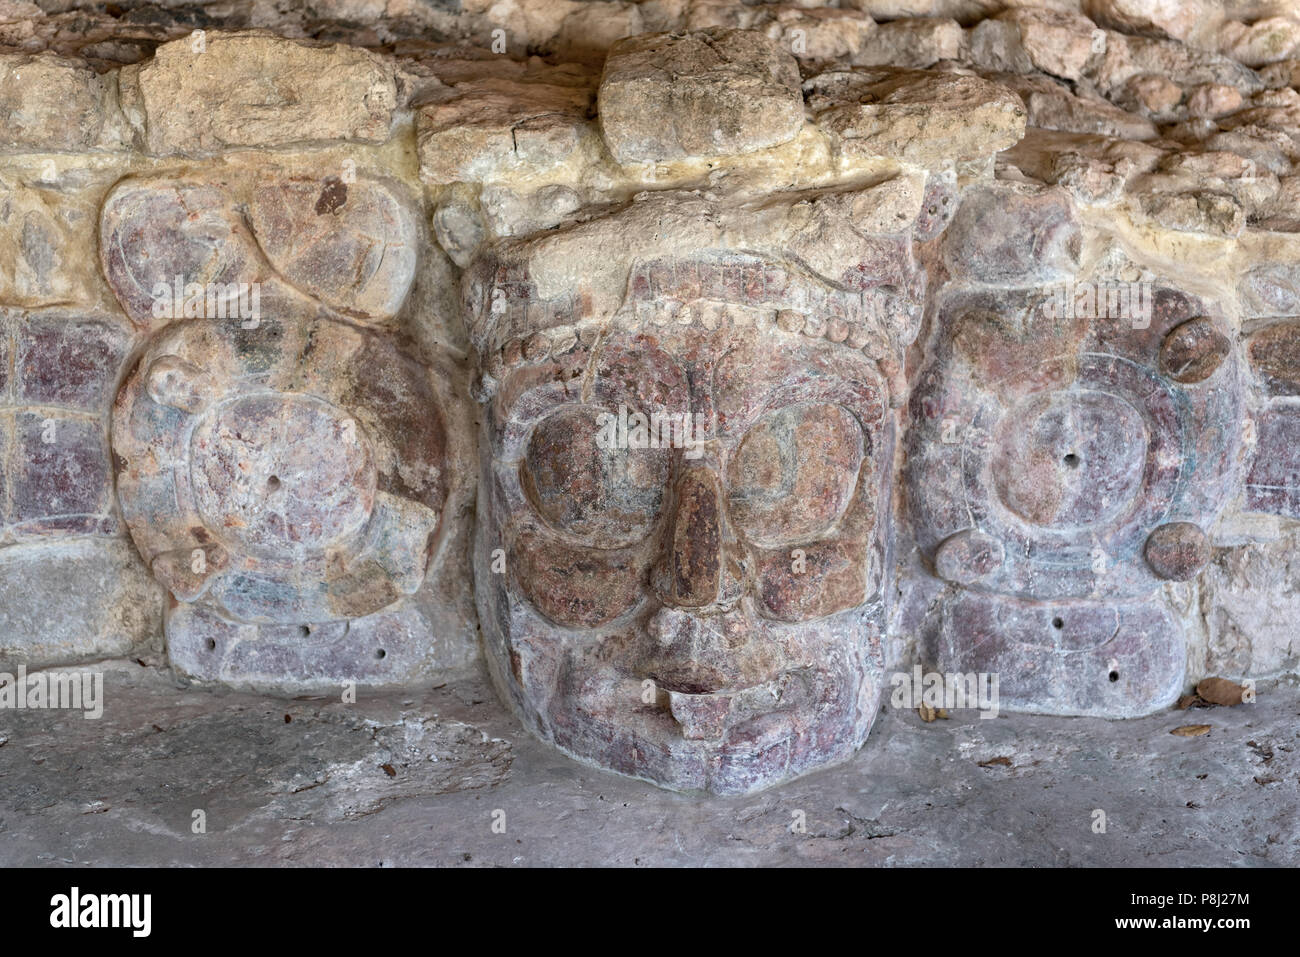 Stone mask at Maya archeological site Edzna, Mexico. - Stock Image